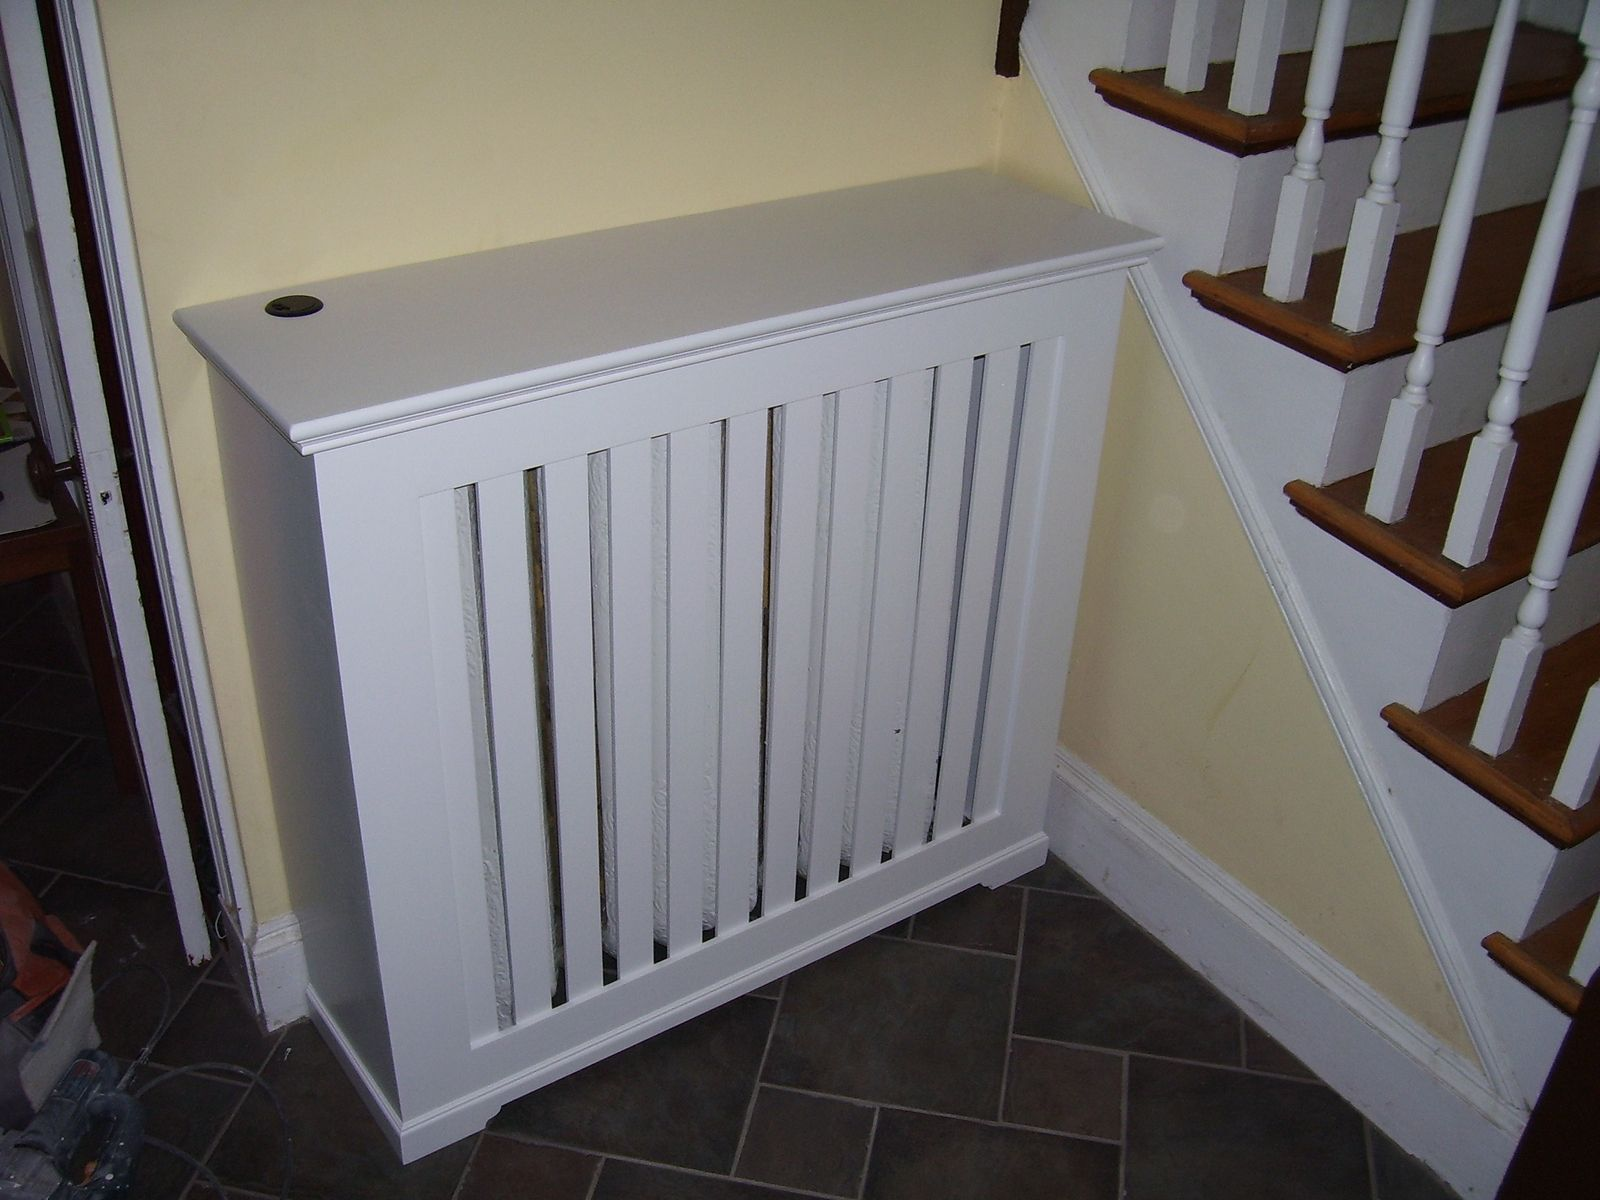 Custom Radiator Covers